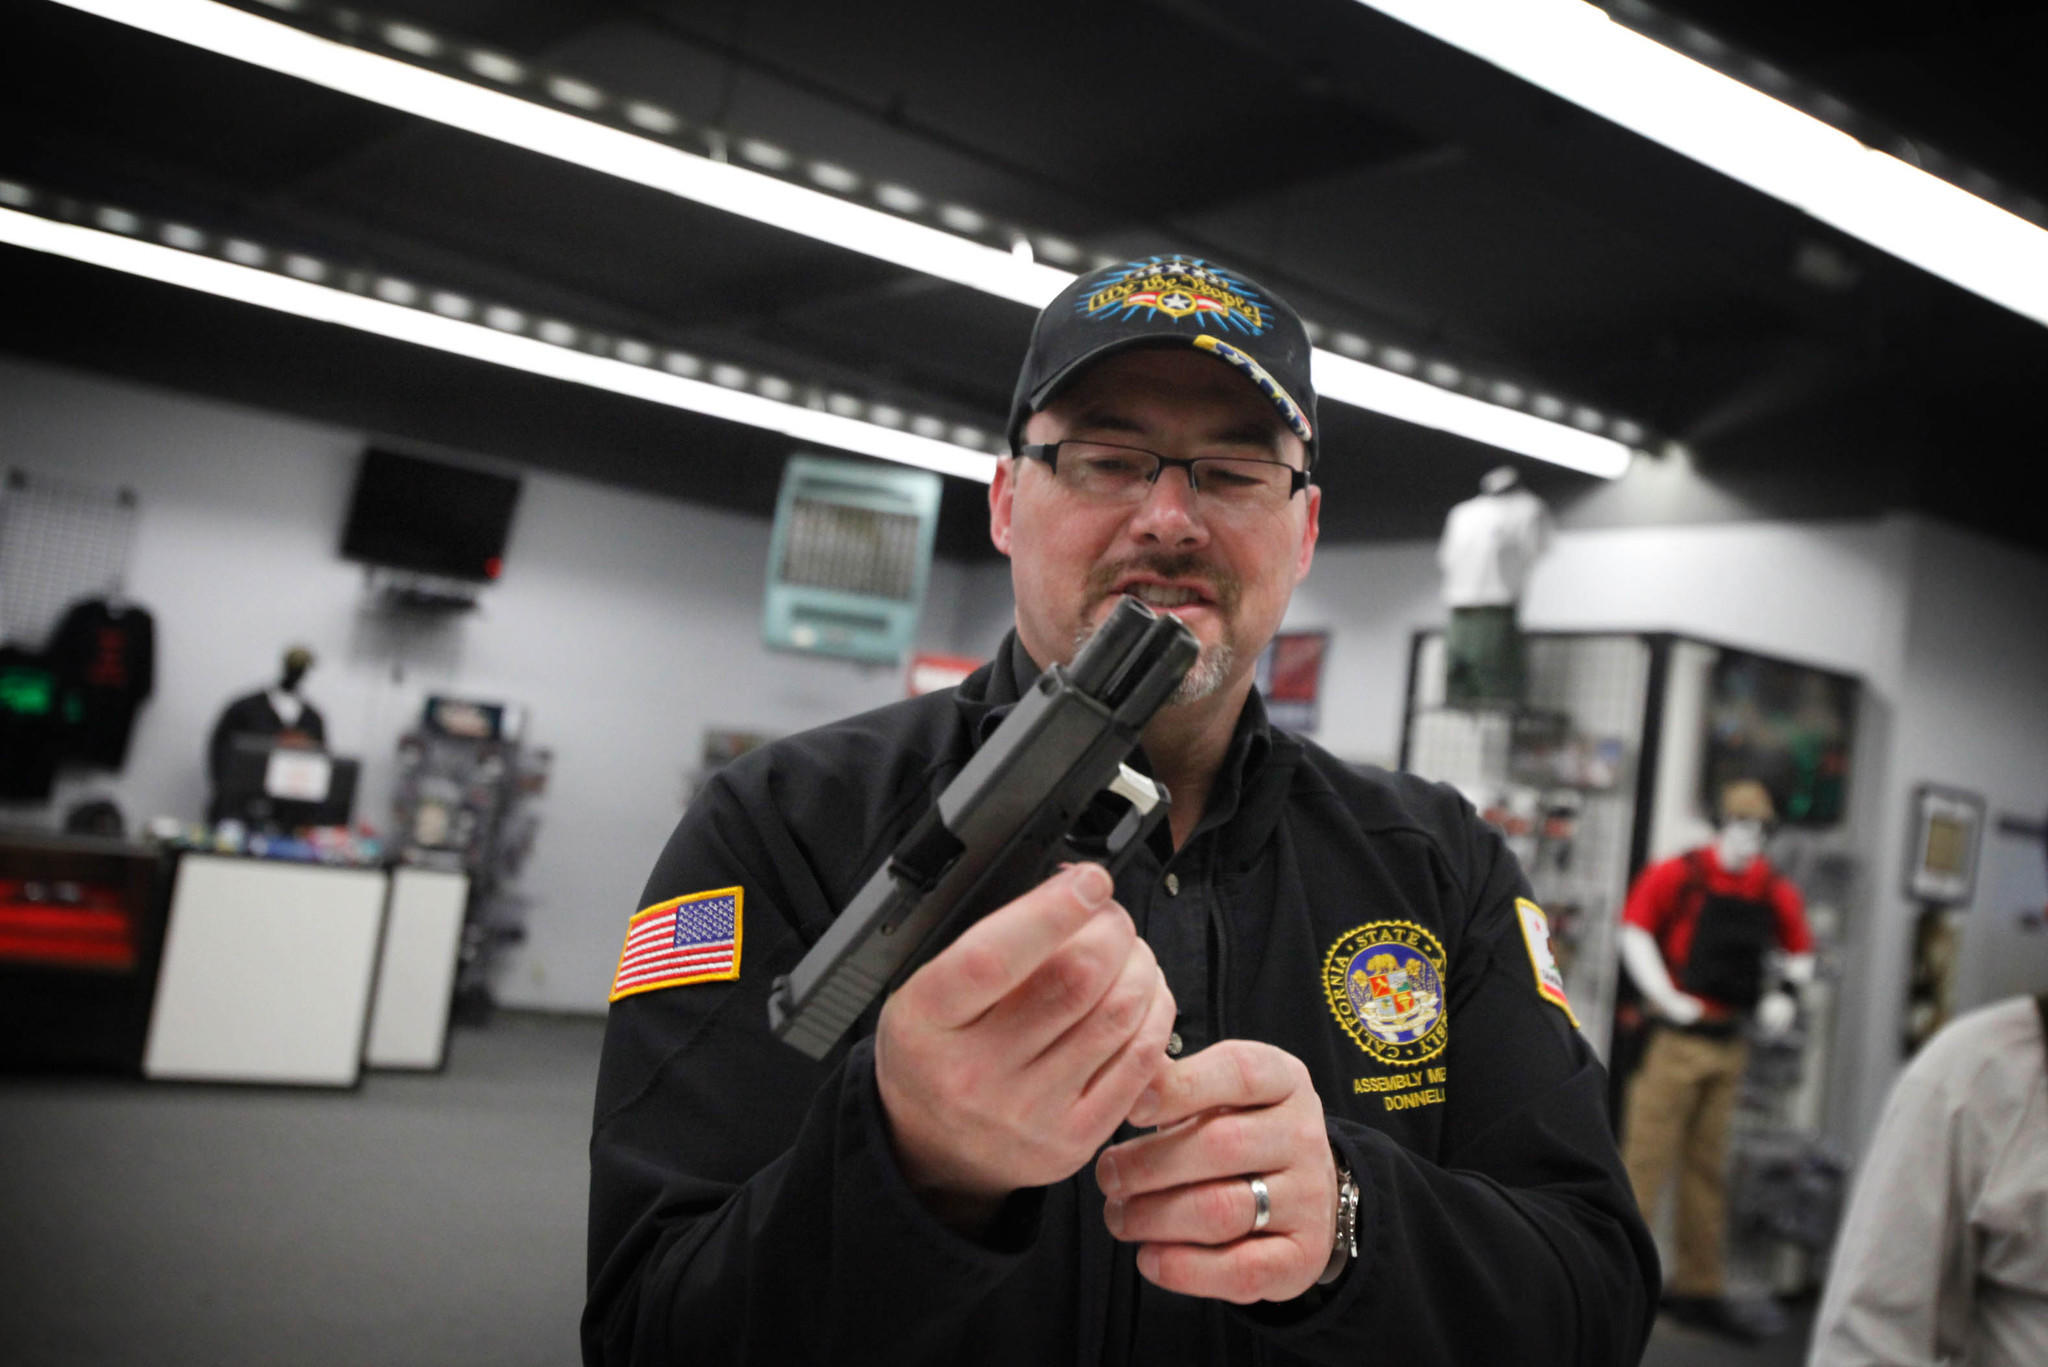 Assemblyman Tim Donnelly, a Republican candidate for governor, used borrowed firearms, including the handgun pictured here, at a gun range last week in Watsonville. His probation agreement prevents him from using weapons that are not registered to him.